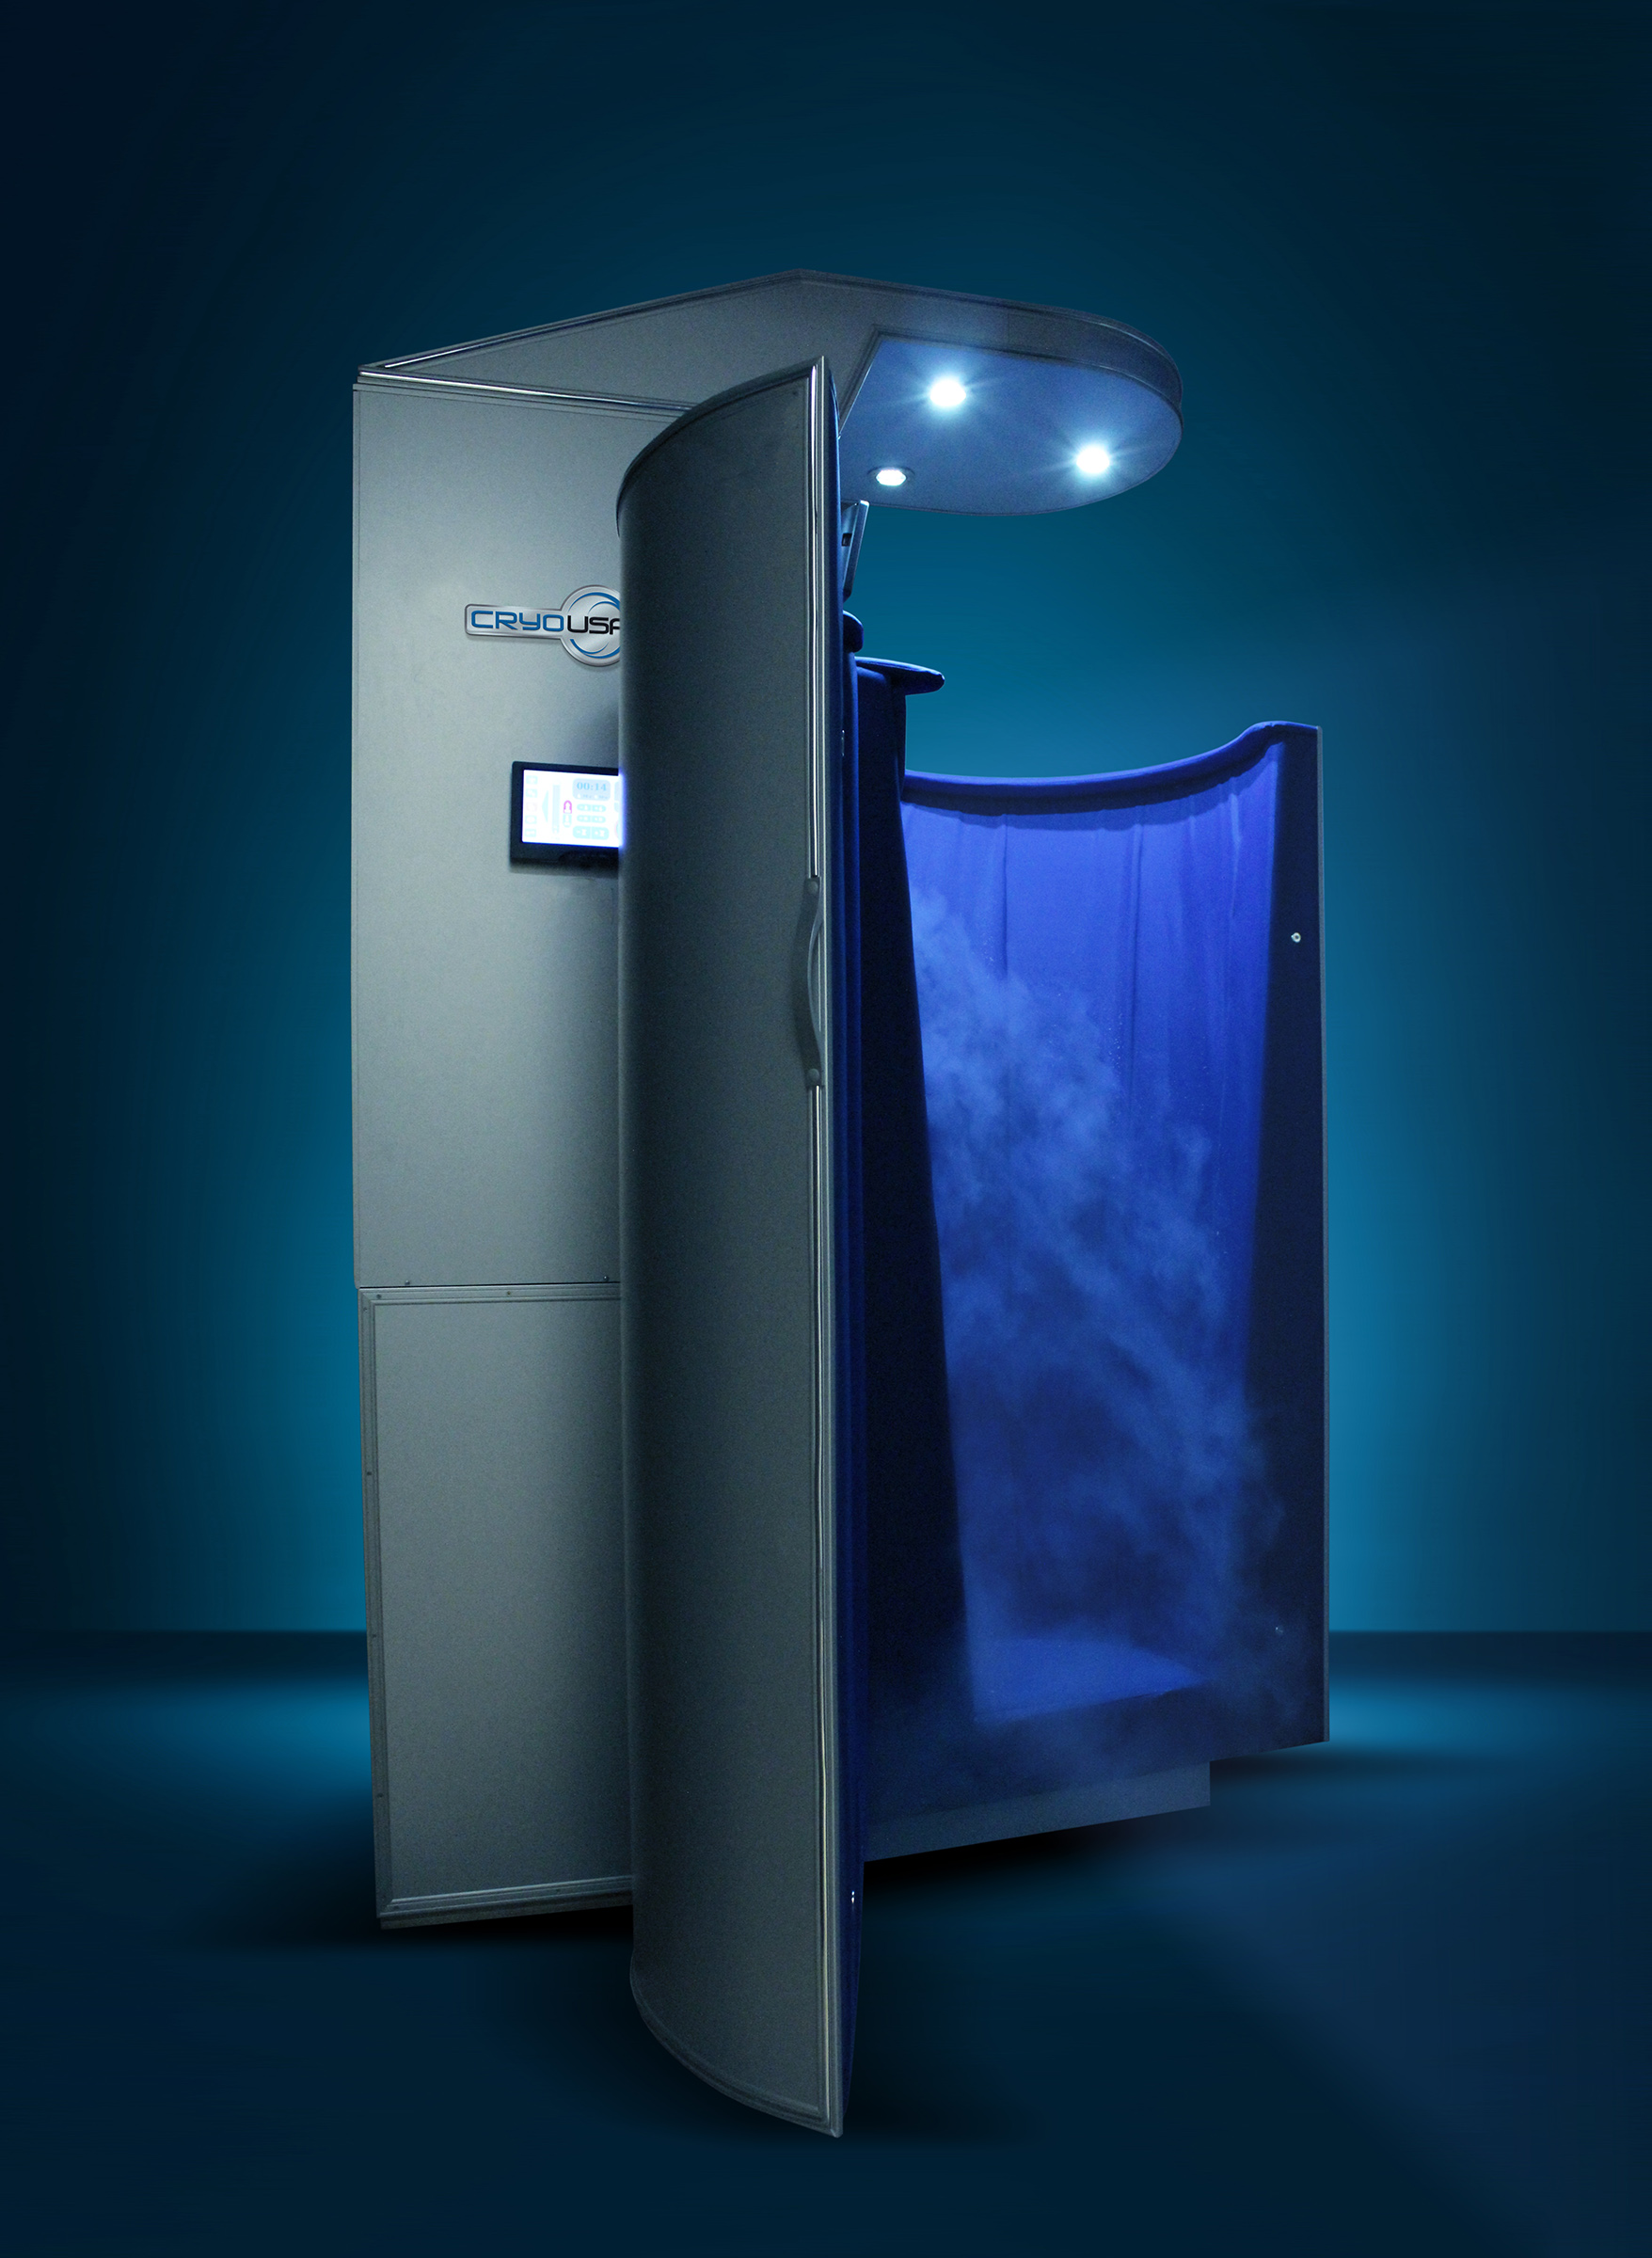 Cryousa Adds Another Whole Body Cryotherapy Chamber At The Oregon Project At Nike